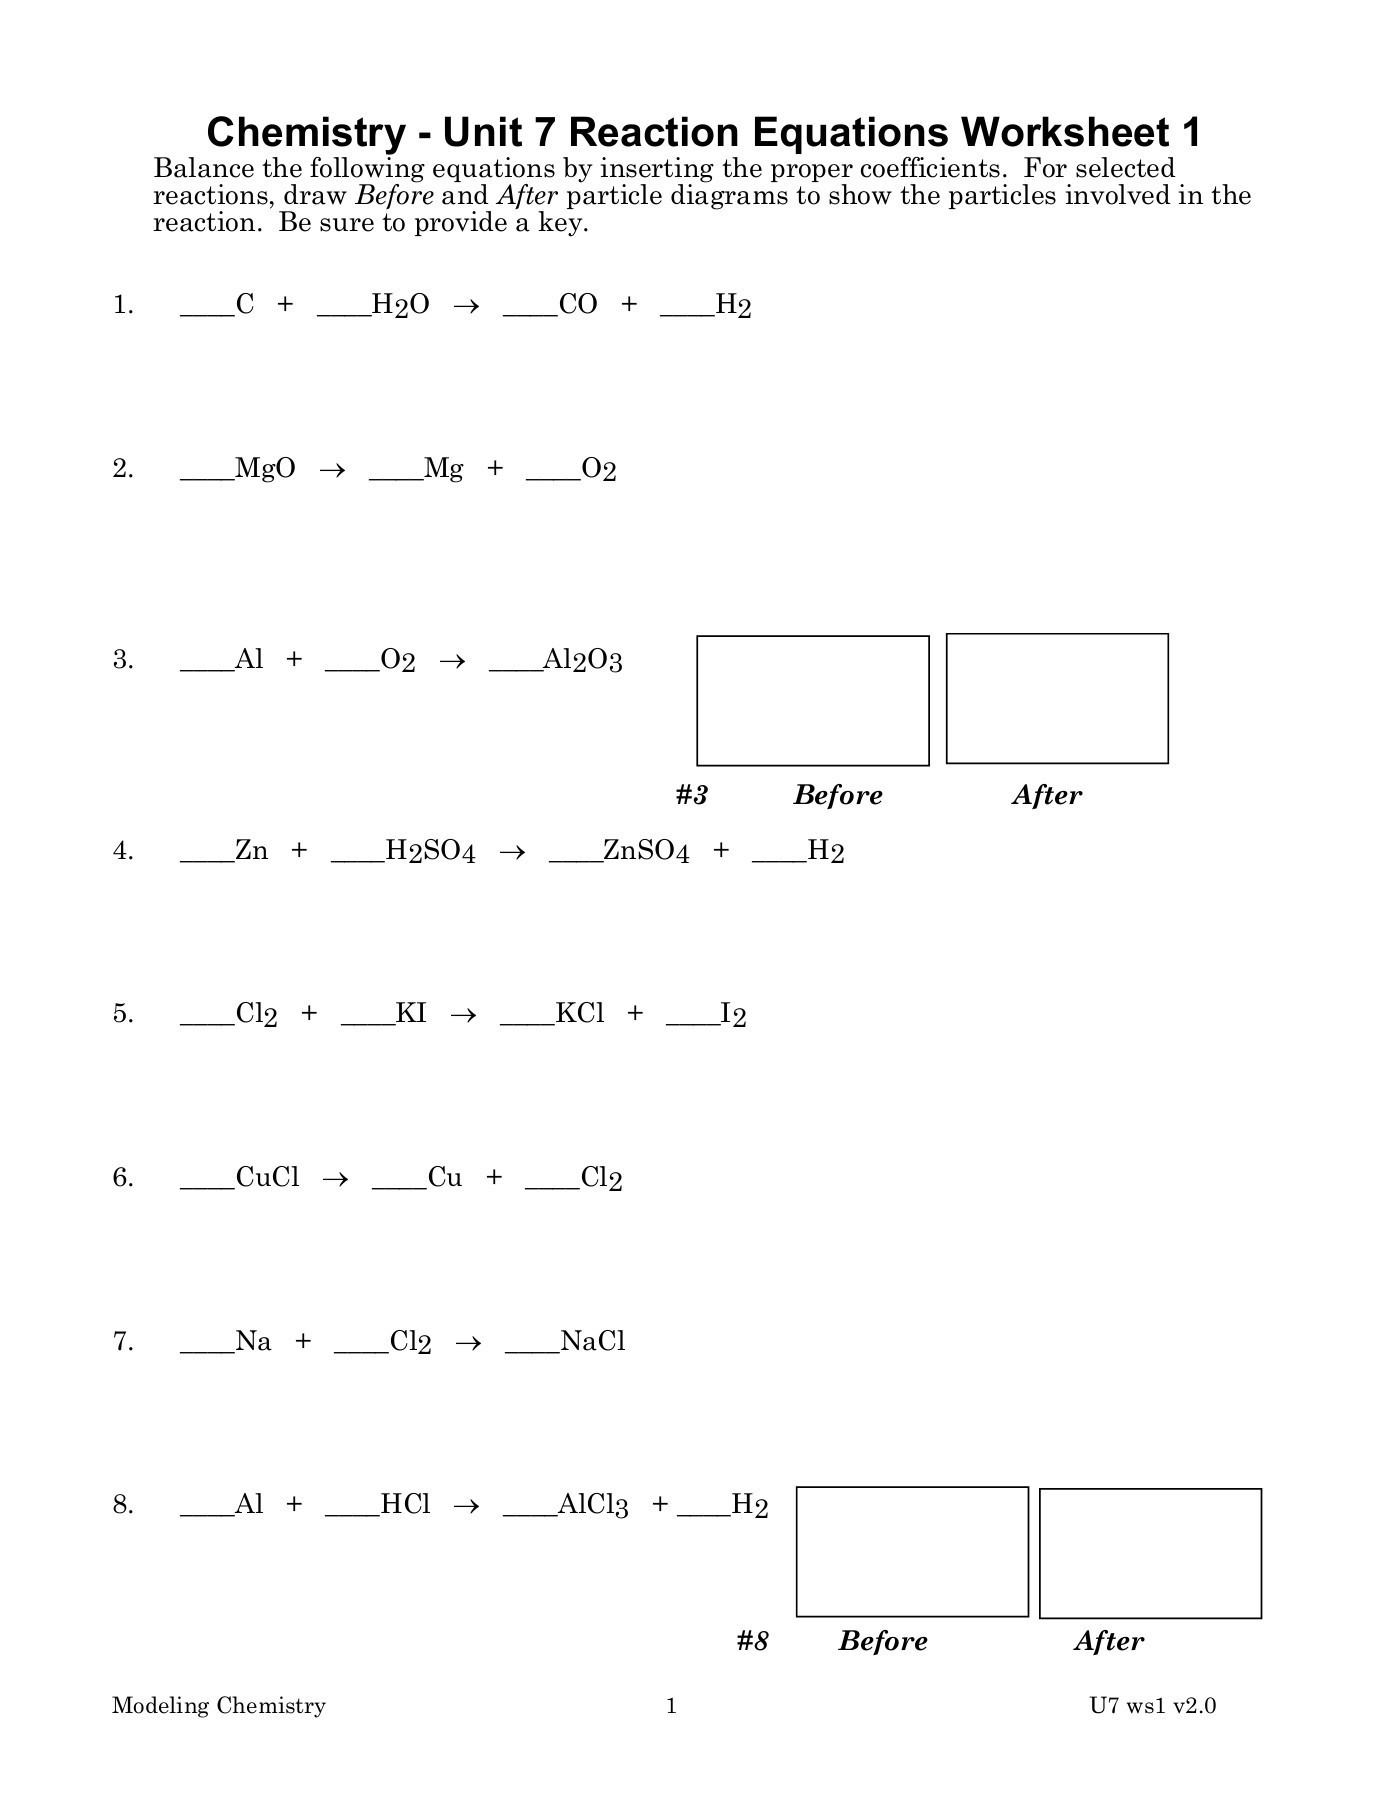 Chemistry Unit 4 Worksheet 1 Answers